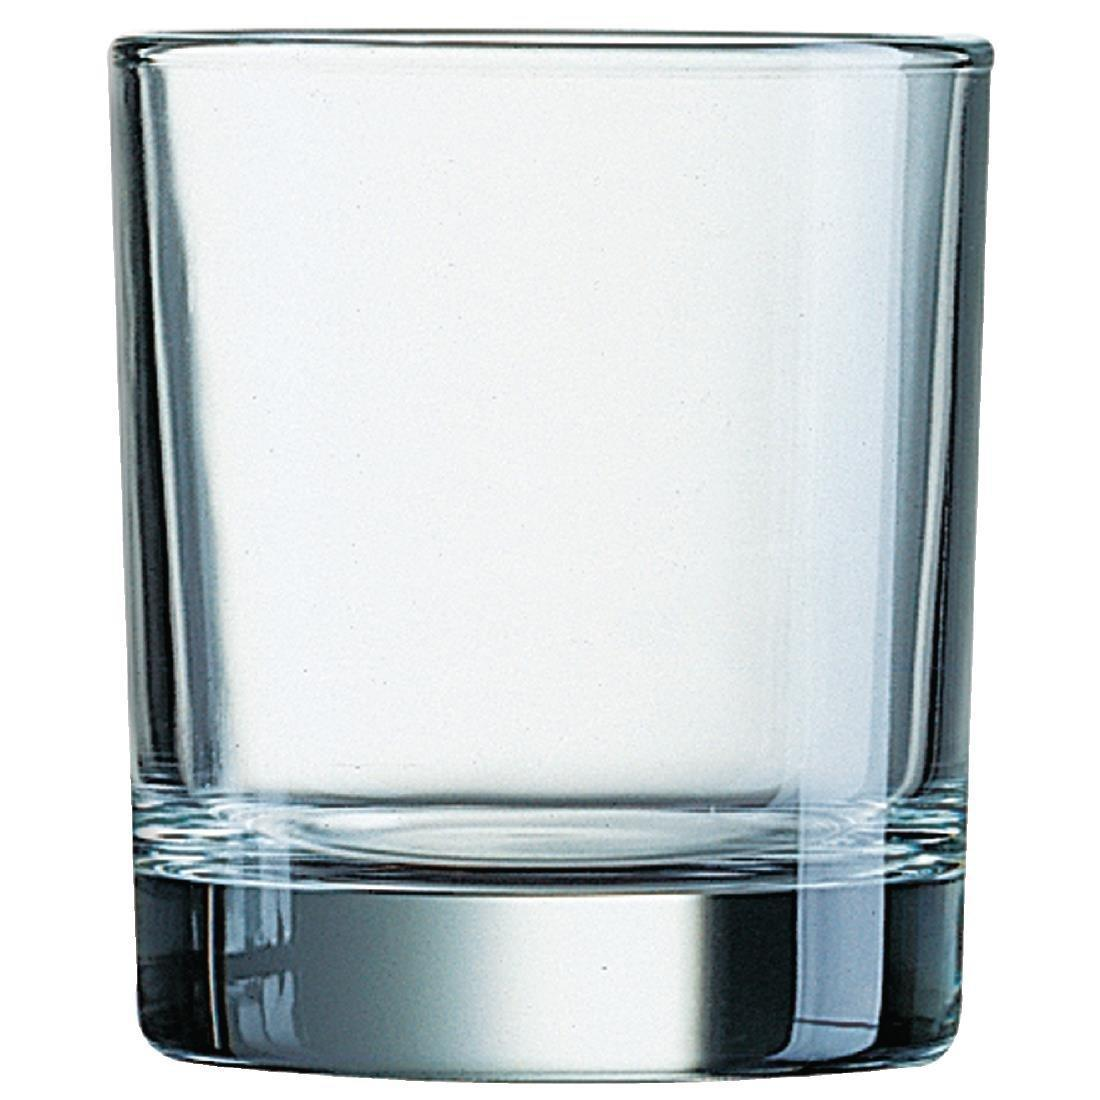 Arc Islande Old Fashioned Tumbler - 300ml 10.5oz (Box 24) - GK062